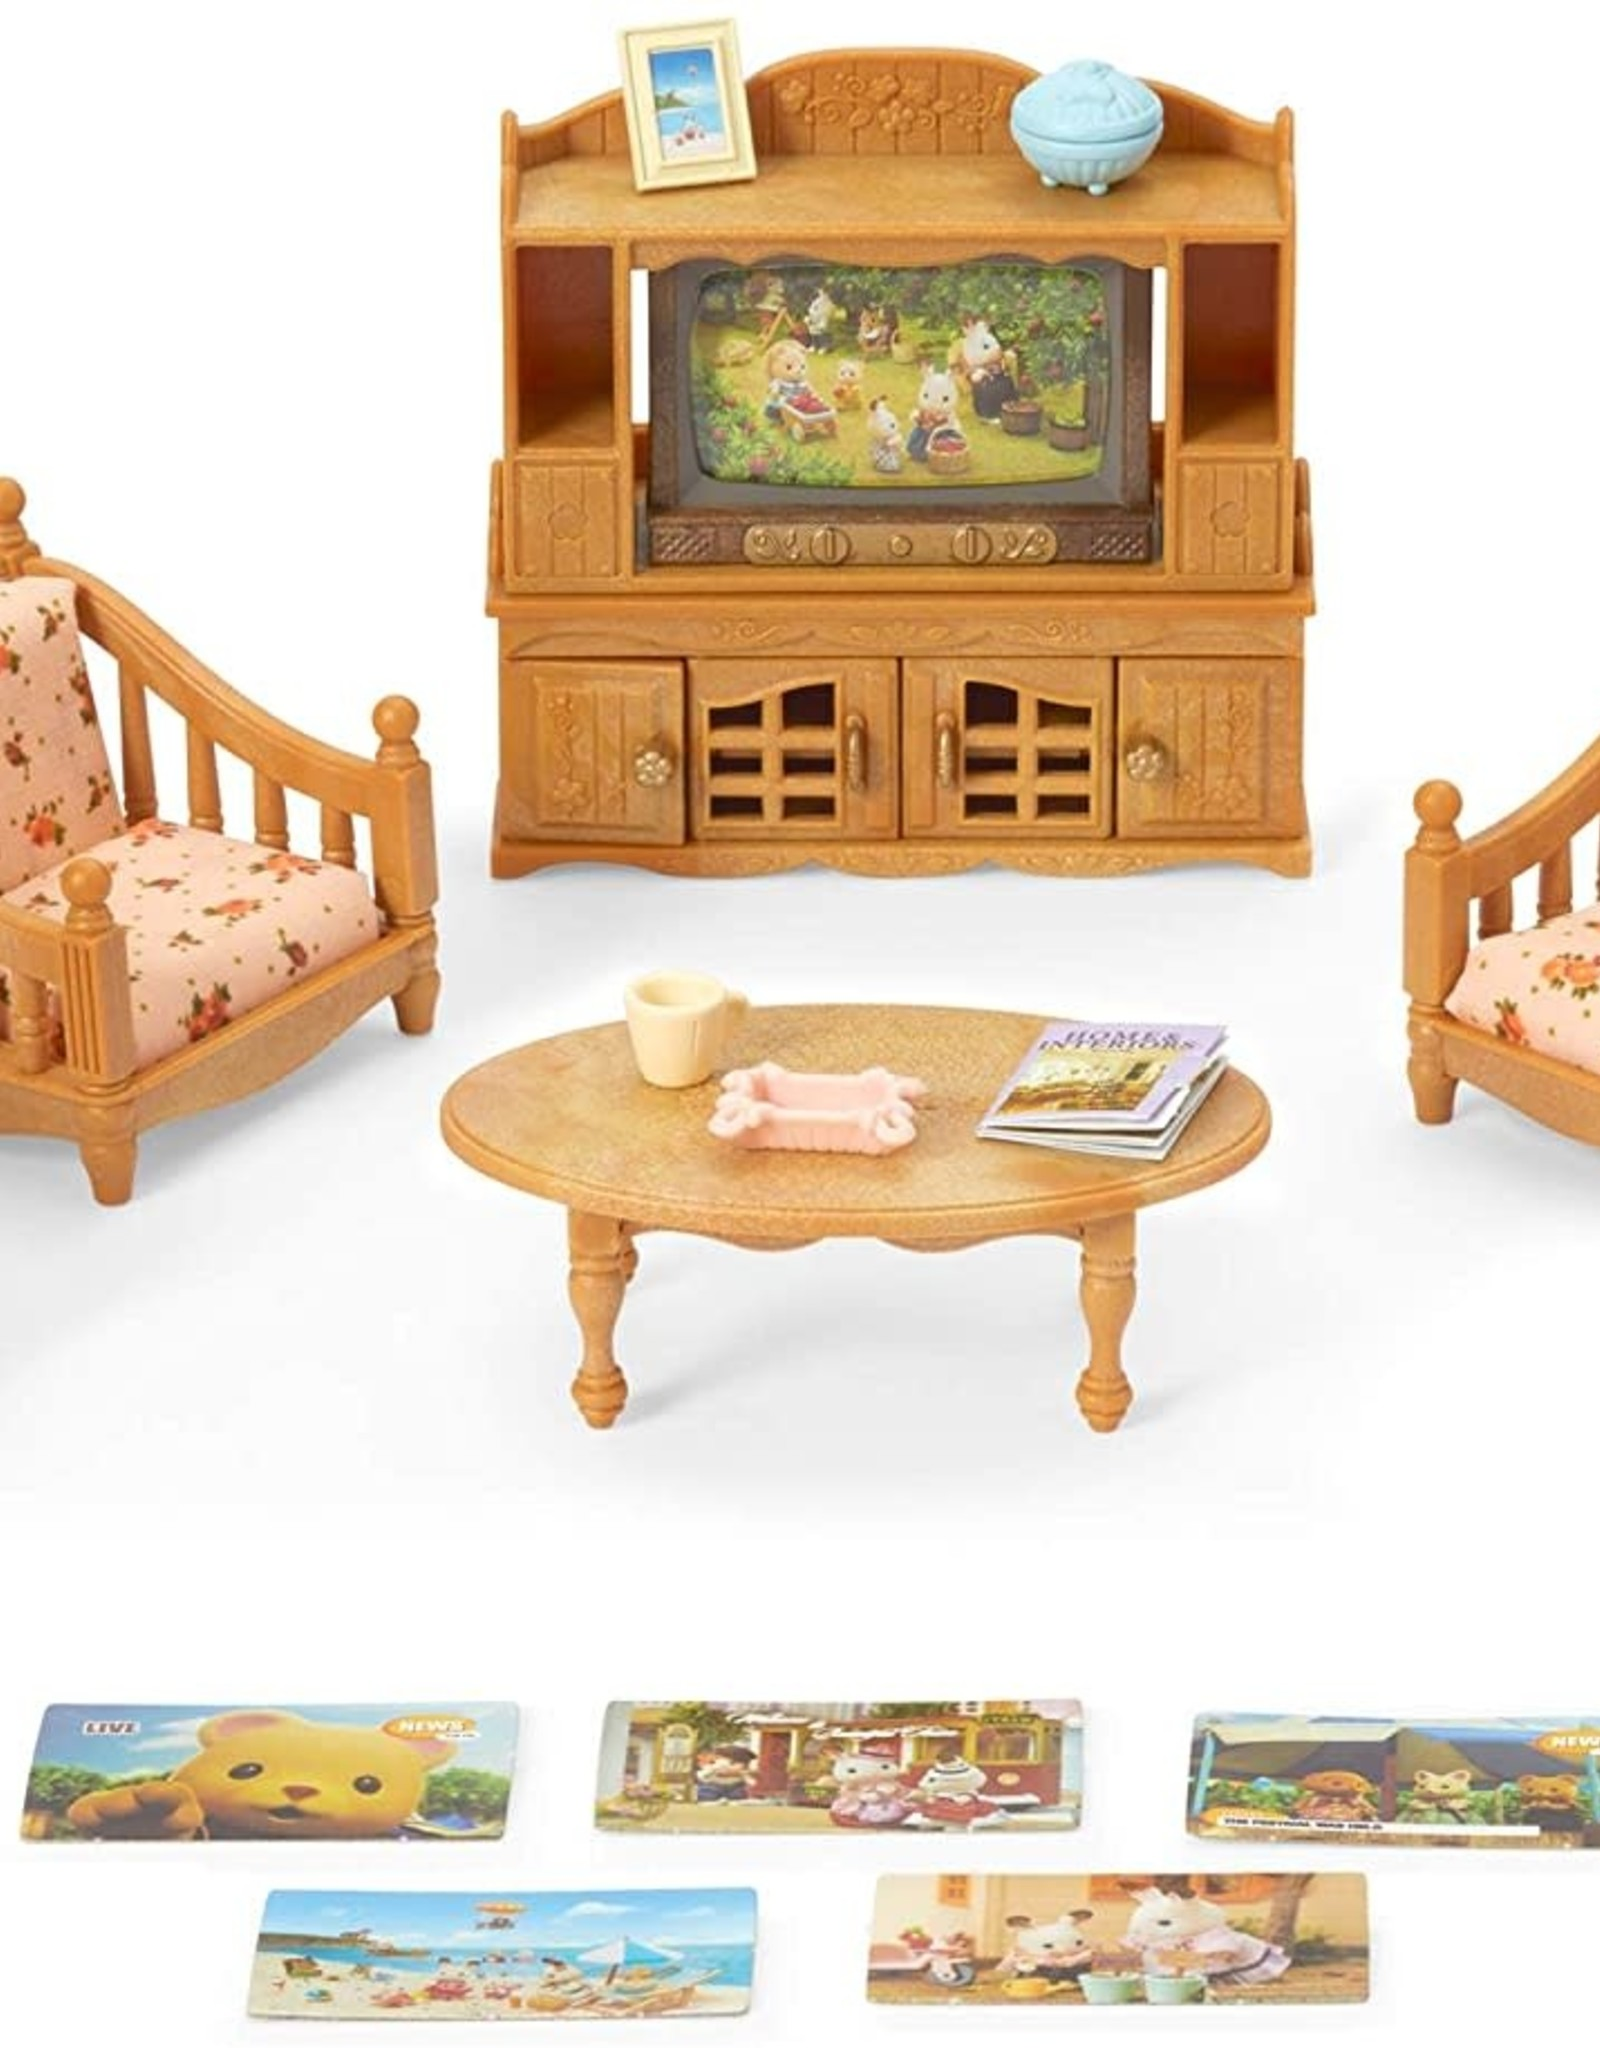 Epoch Everlasting Play Comfy Living Room Set